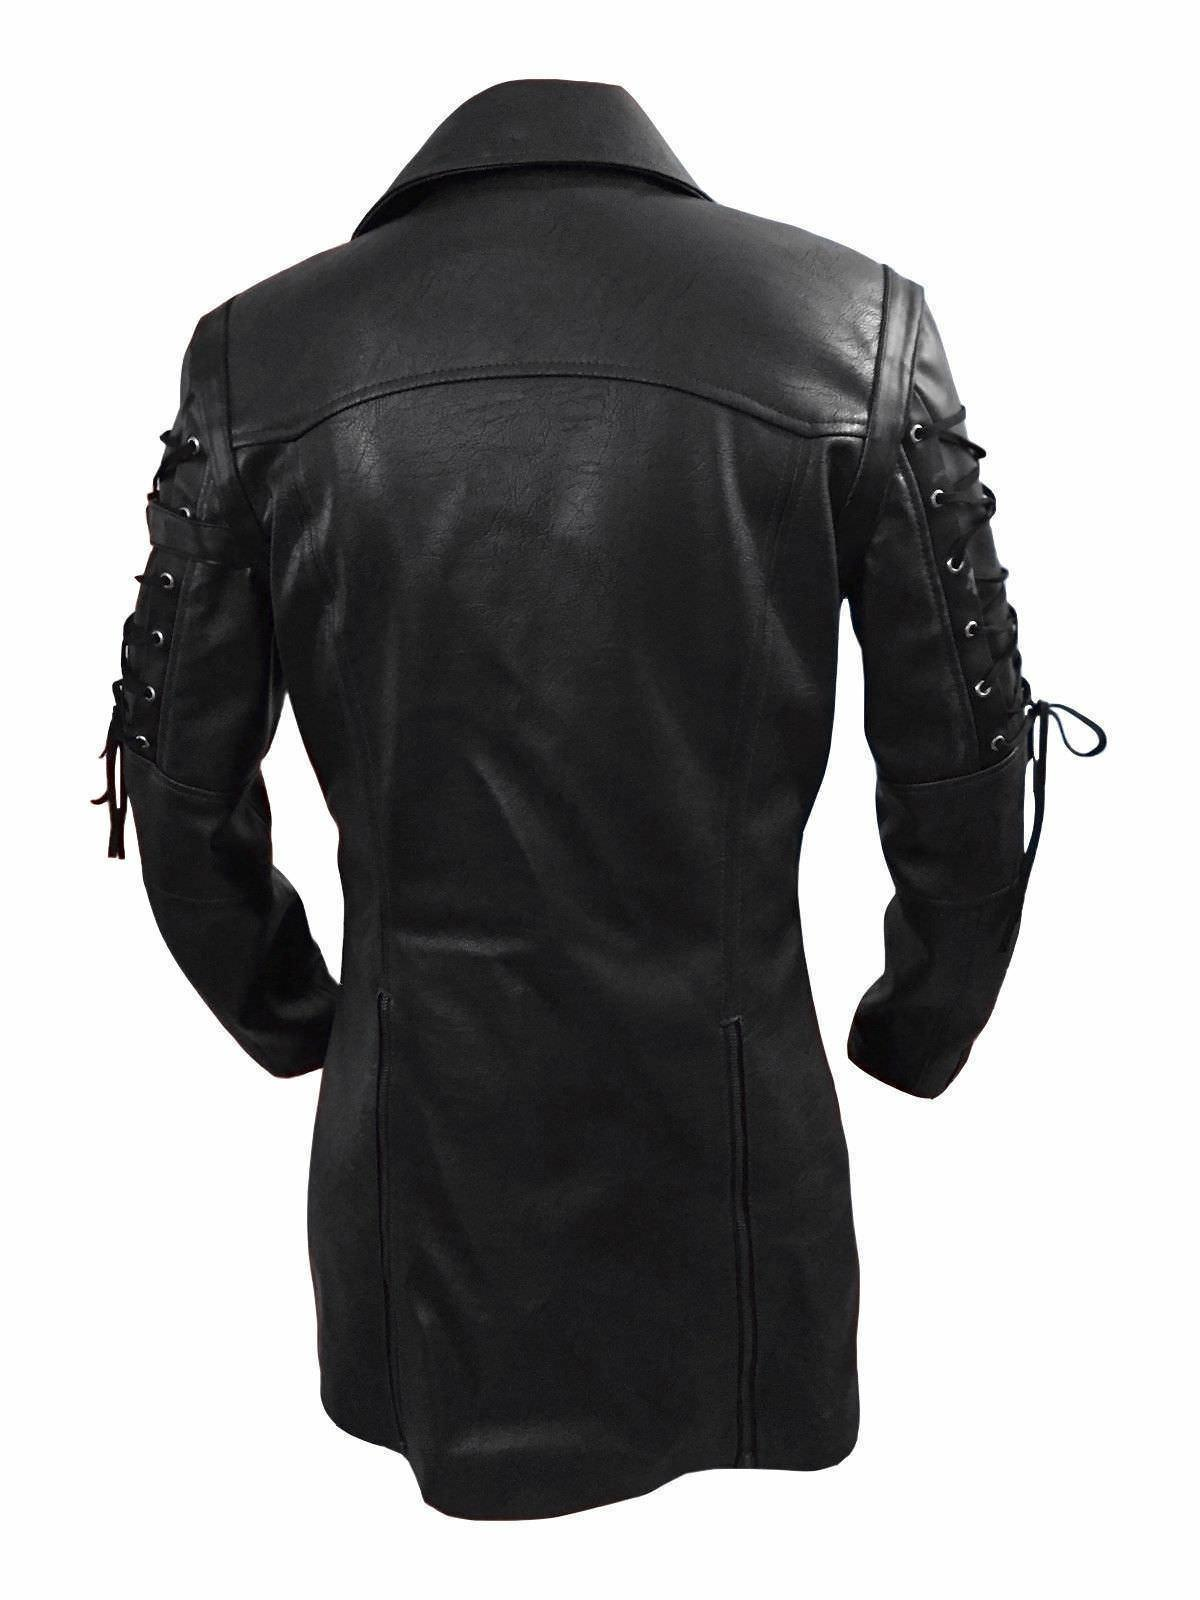 Steampunk Men's Gothic PU Jacket Coat Goth Punk Coat Arrival